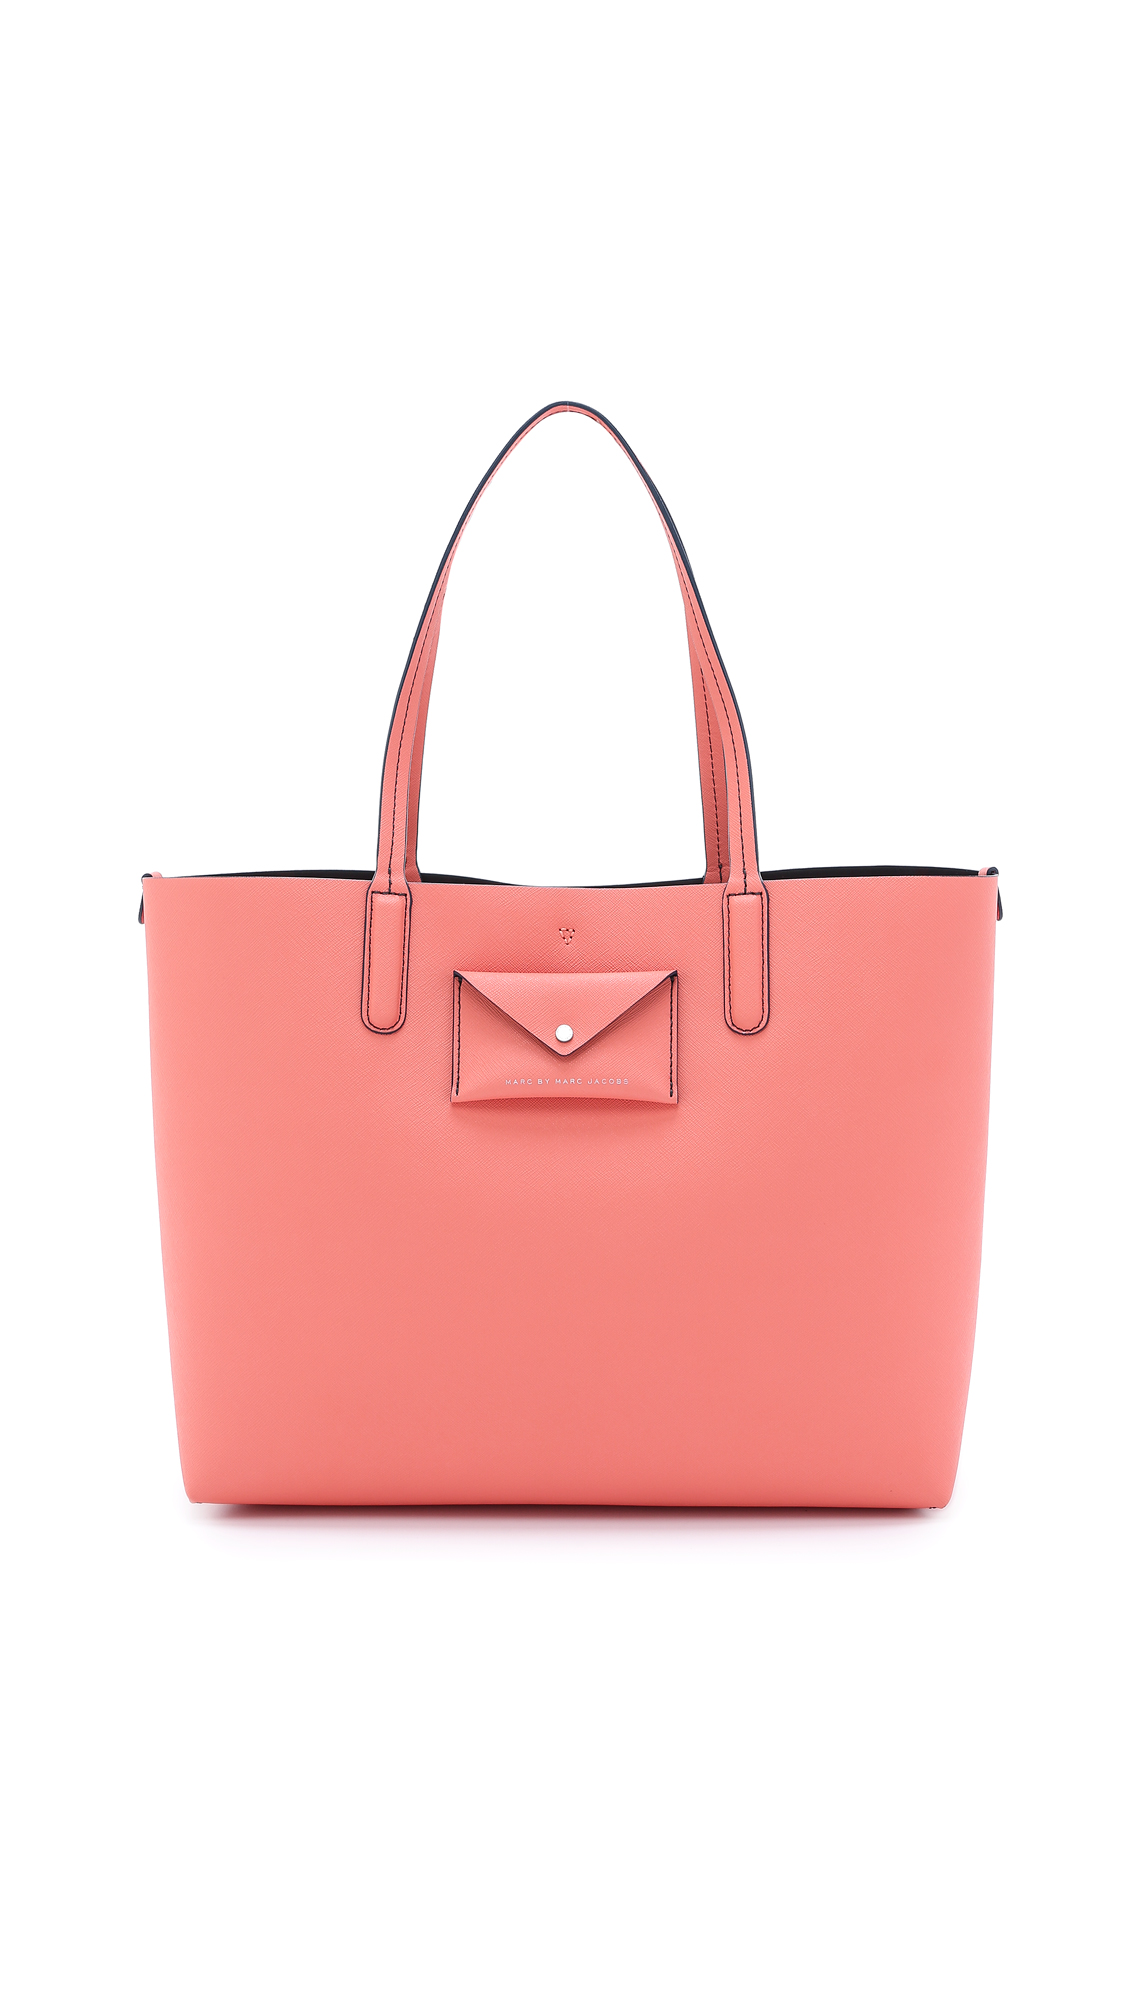 055e7471cde2 Marc by Marc Jacobs Metropolitote Tote 48